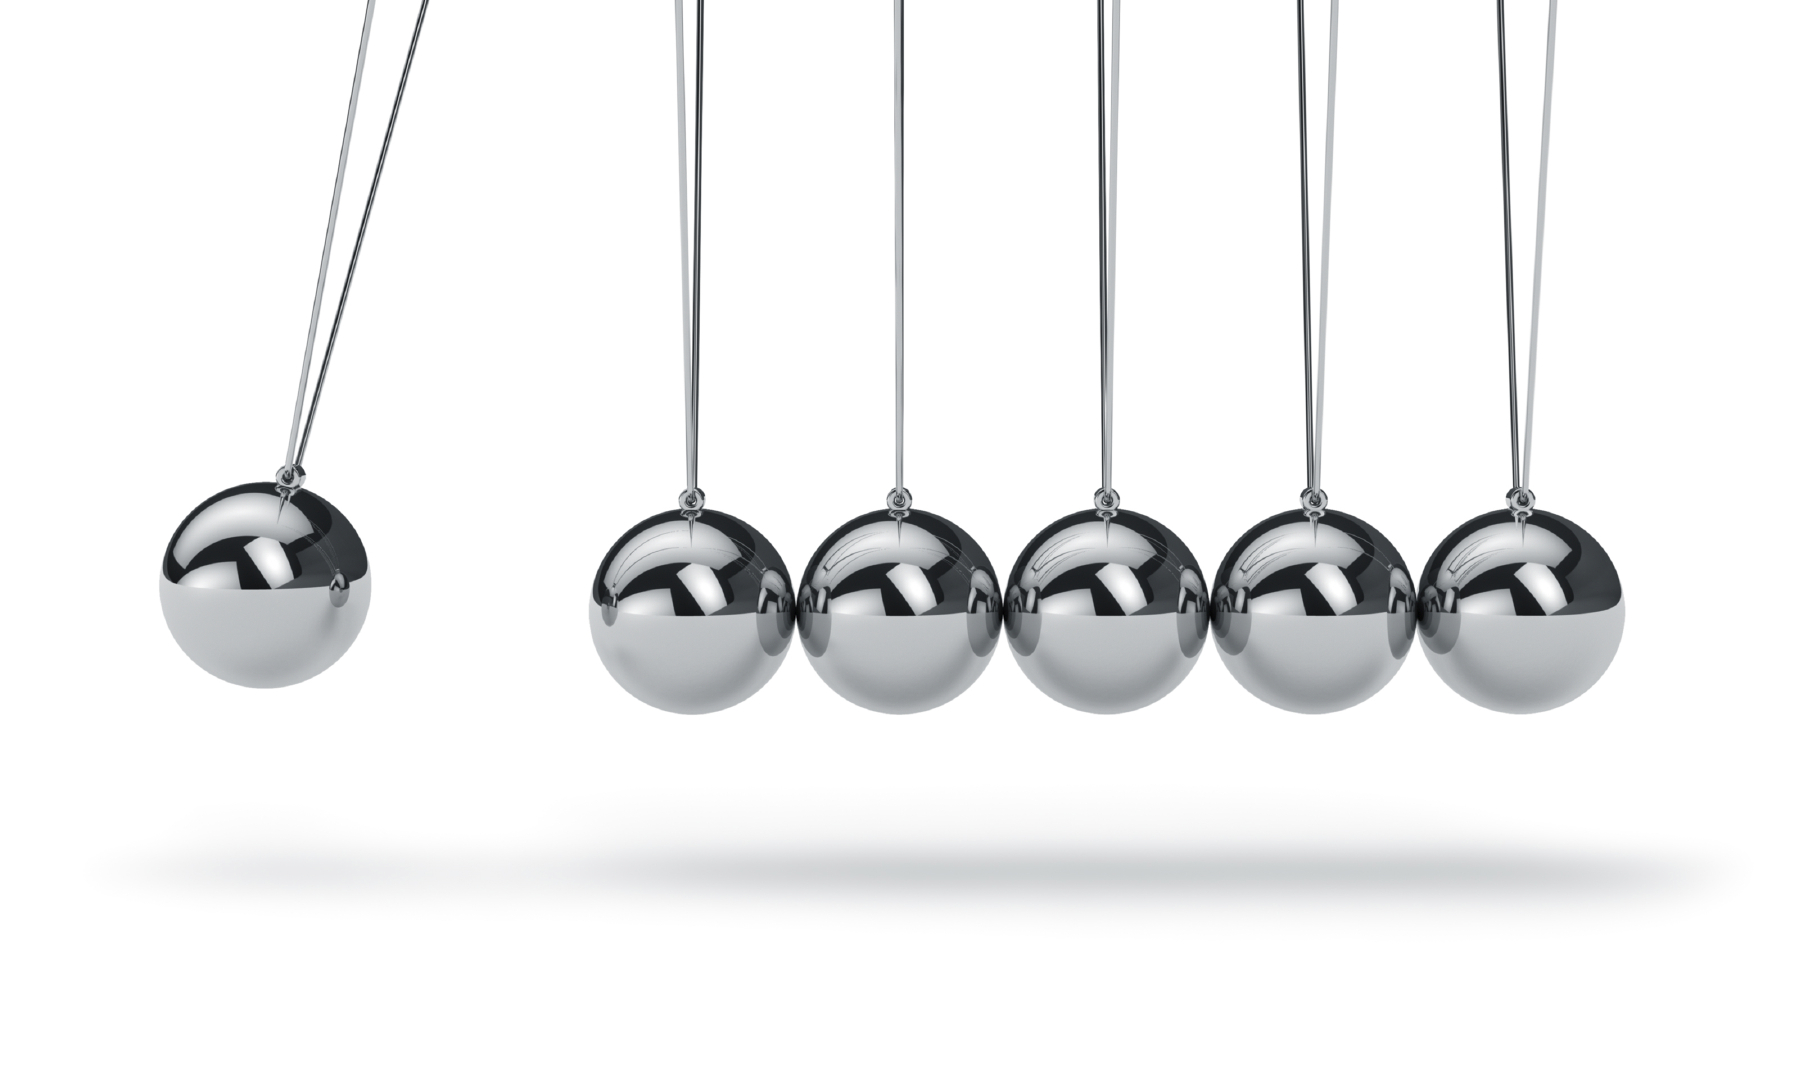 How to Use the Newtons Cradle